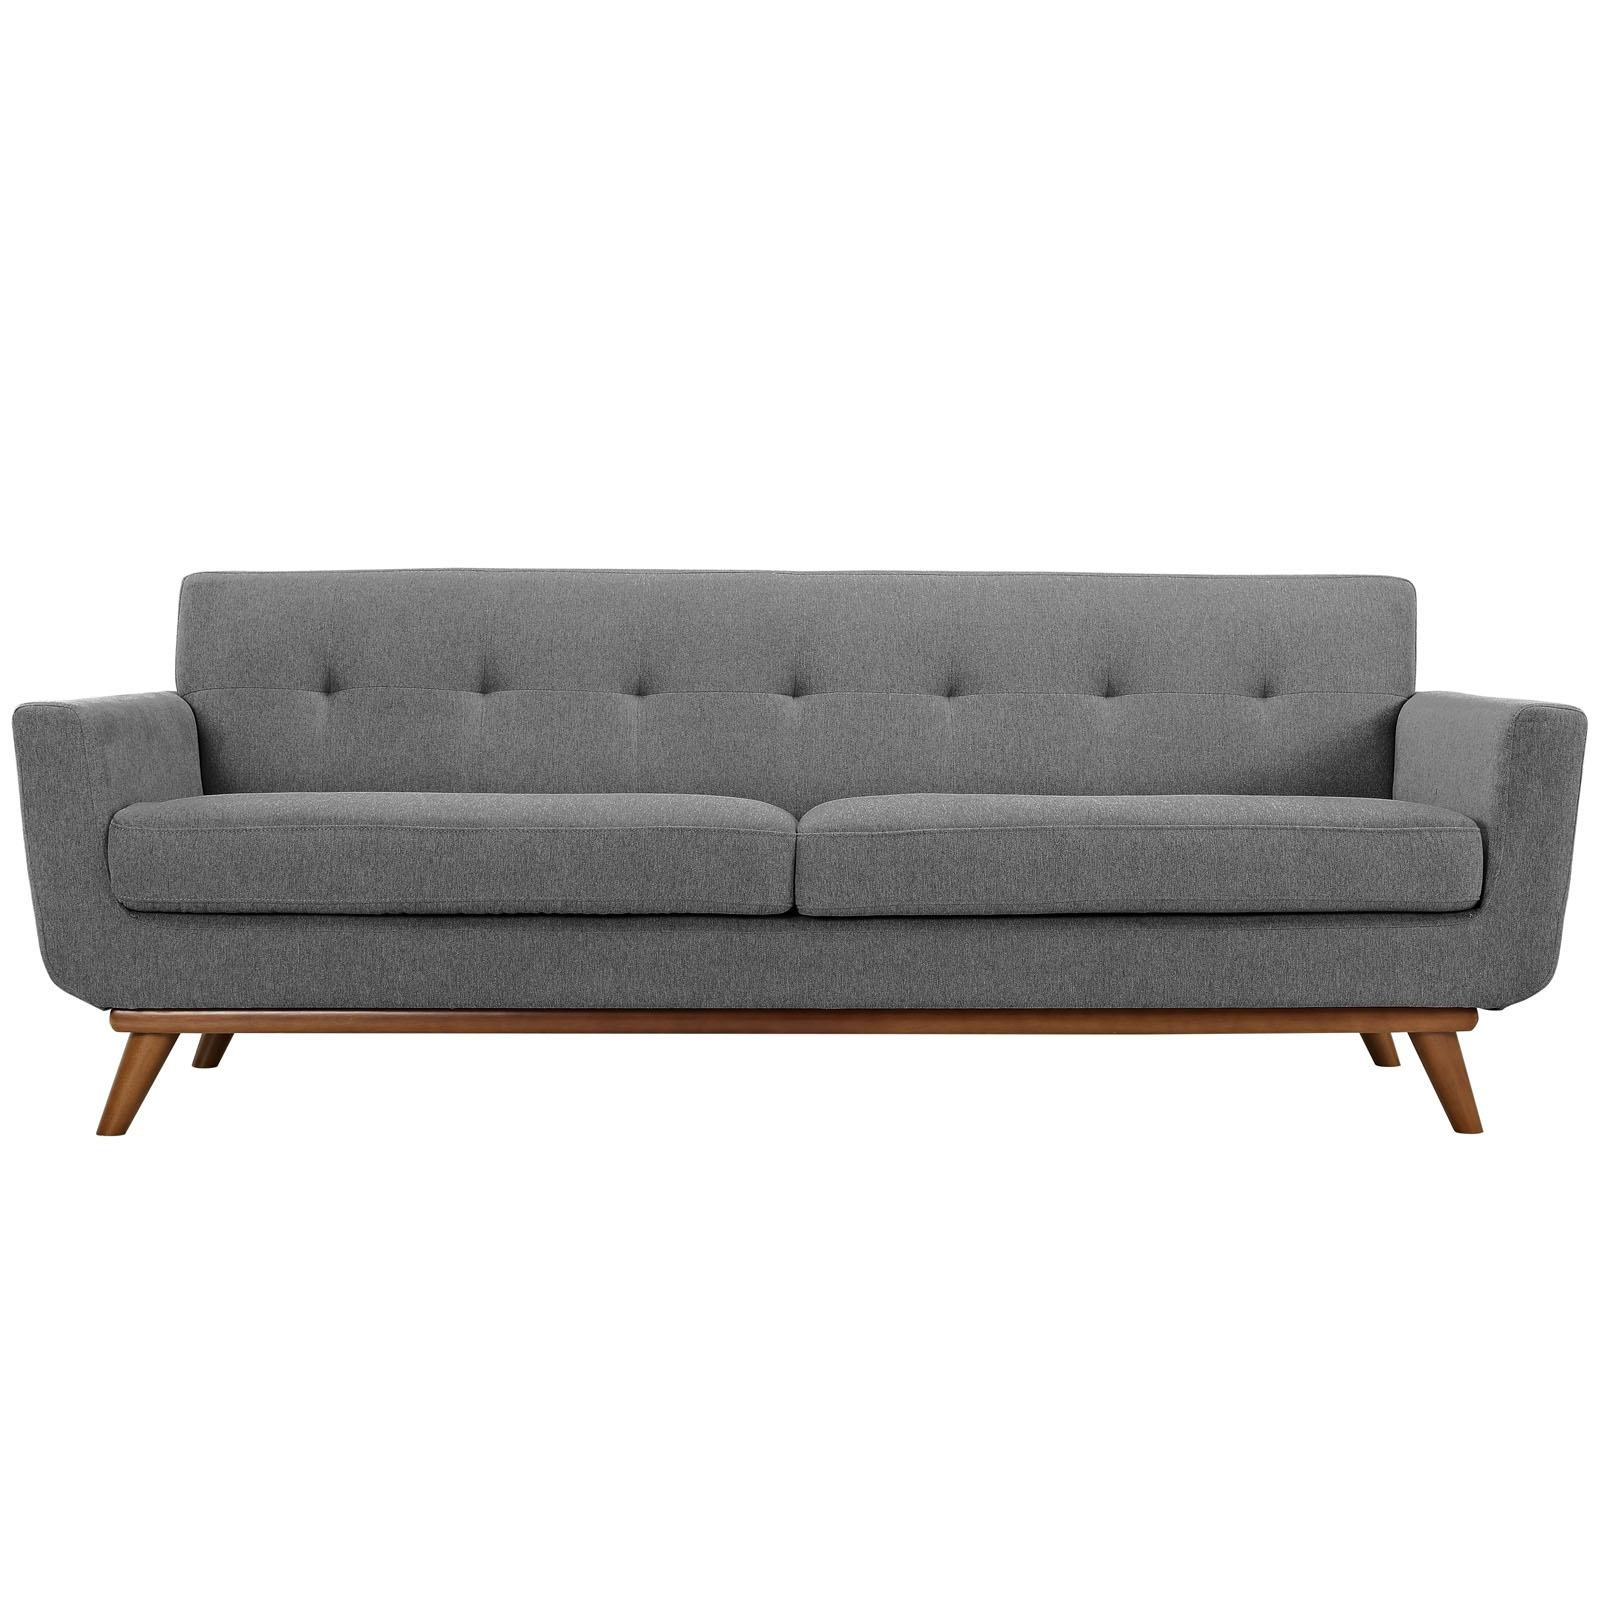 Sofas & Couches – Walmart Throughout Sectional Sofas At Walmart (View 12 of 15)